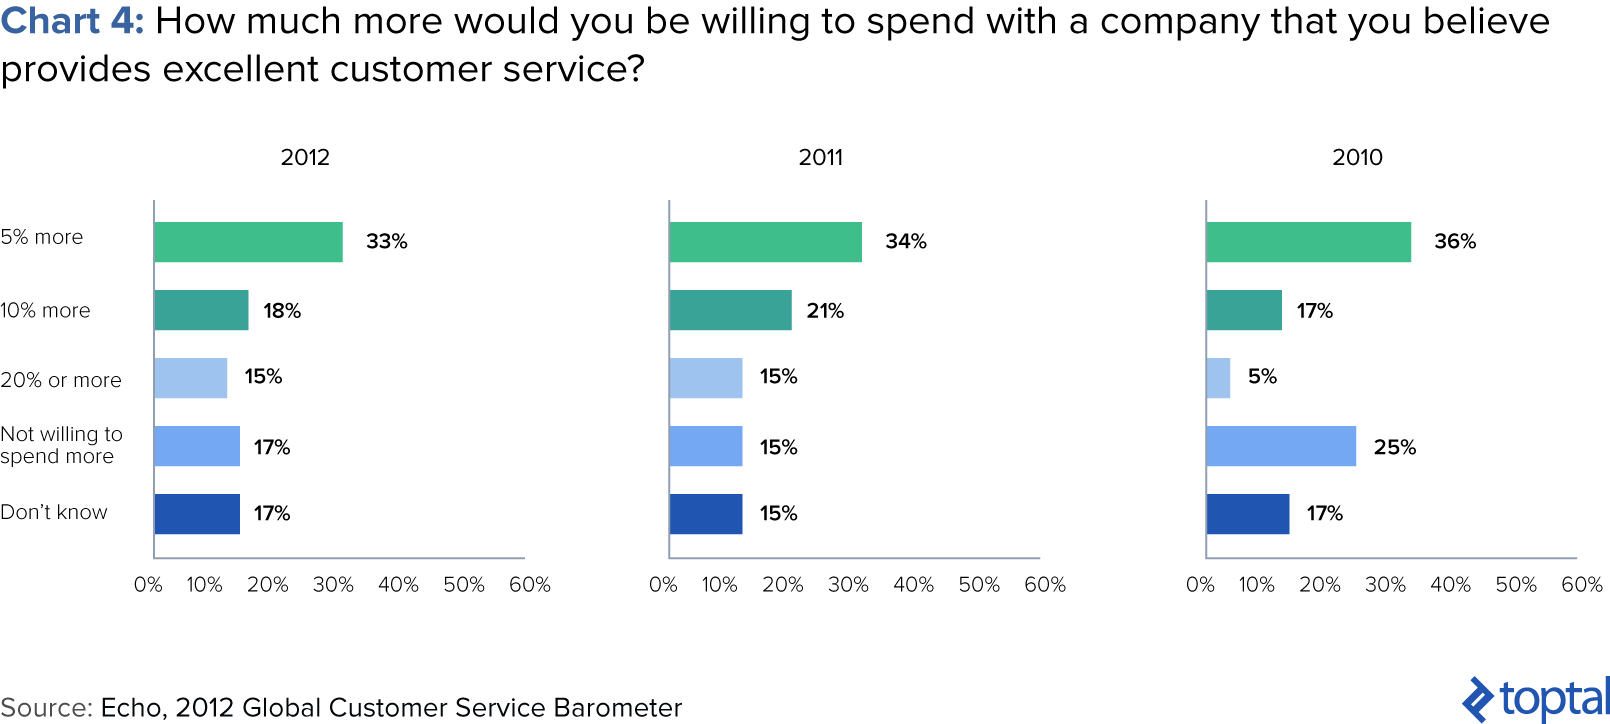 Chart 4: How much more would you be willing to spend with a company that you believe provides excellent customer service?